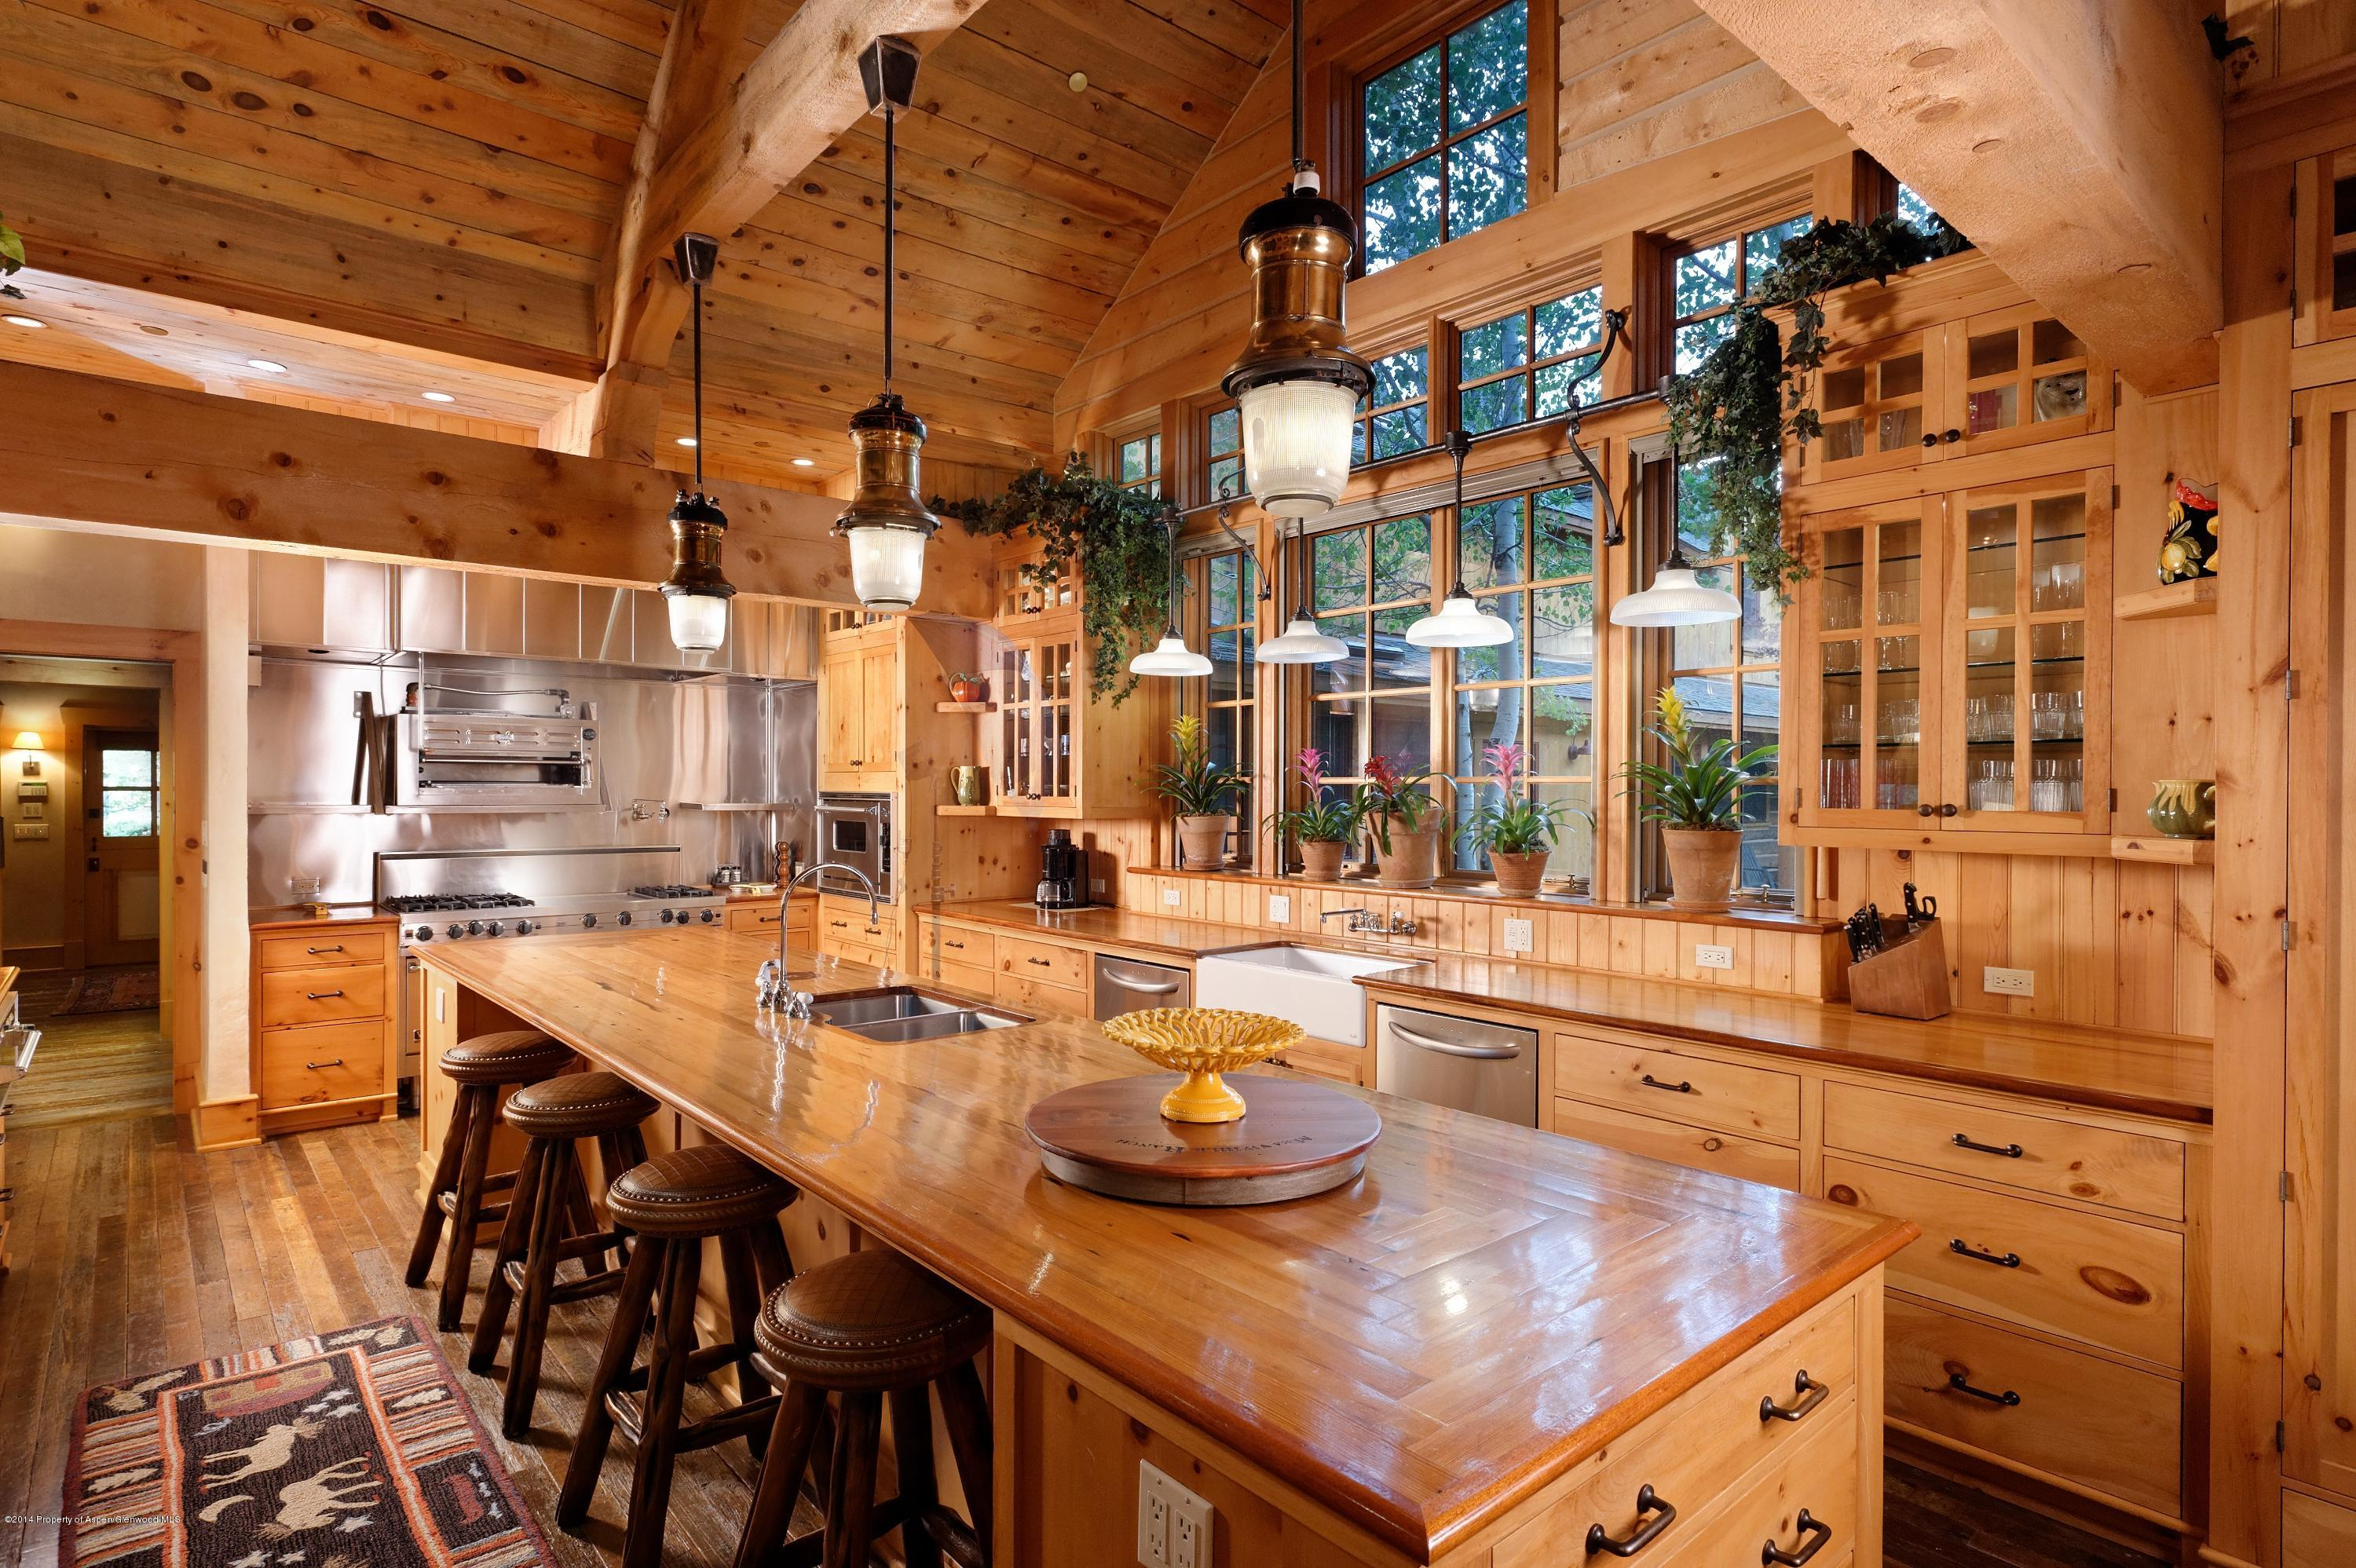 MLS# 135595 - 20 - 50 E River Ranch Road, Snowmass, CO 81654